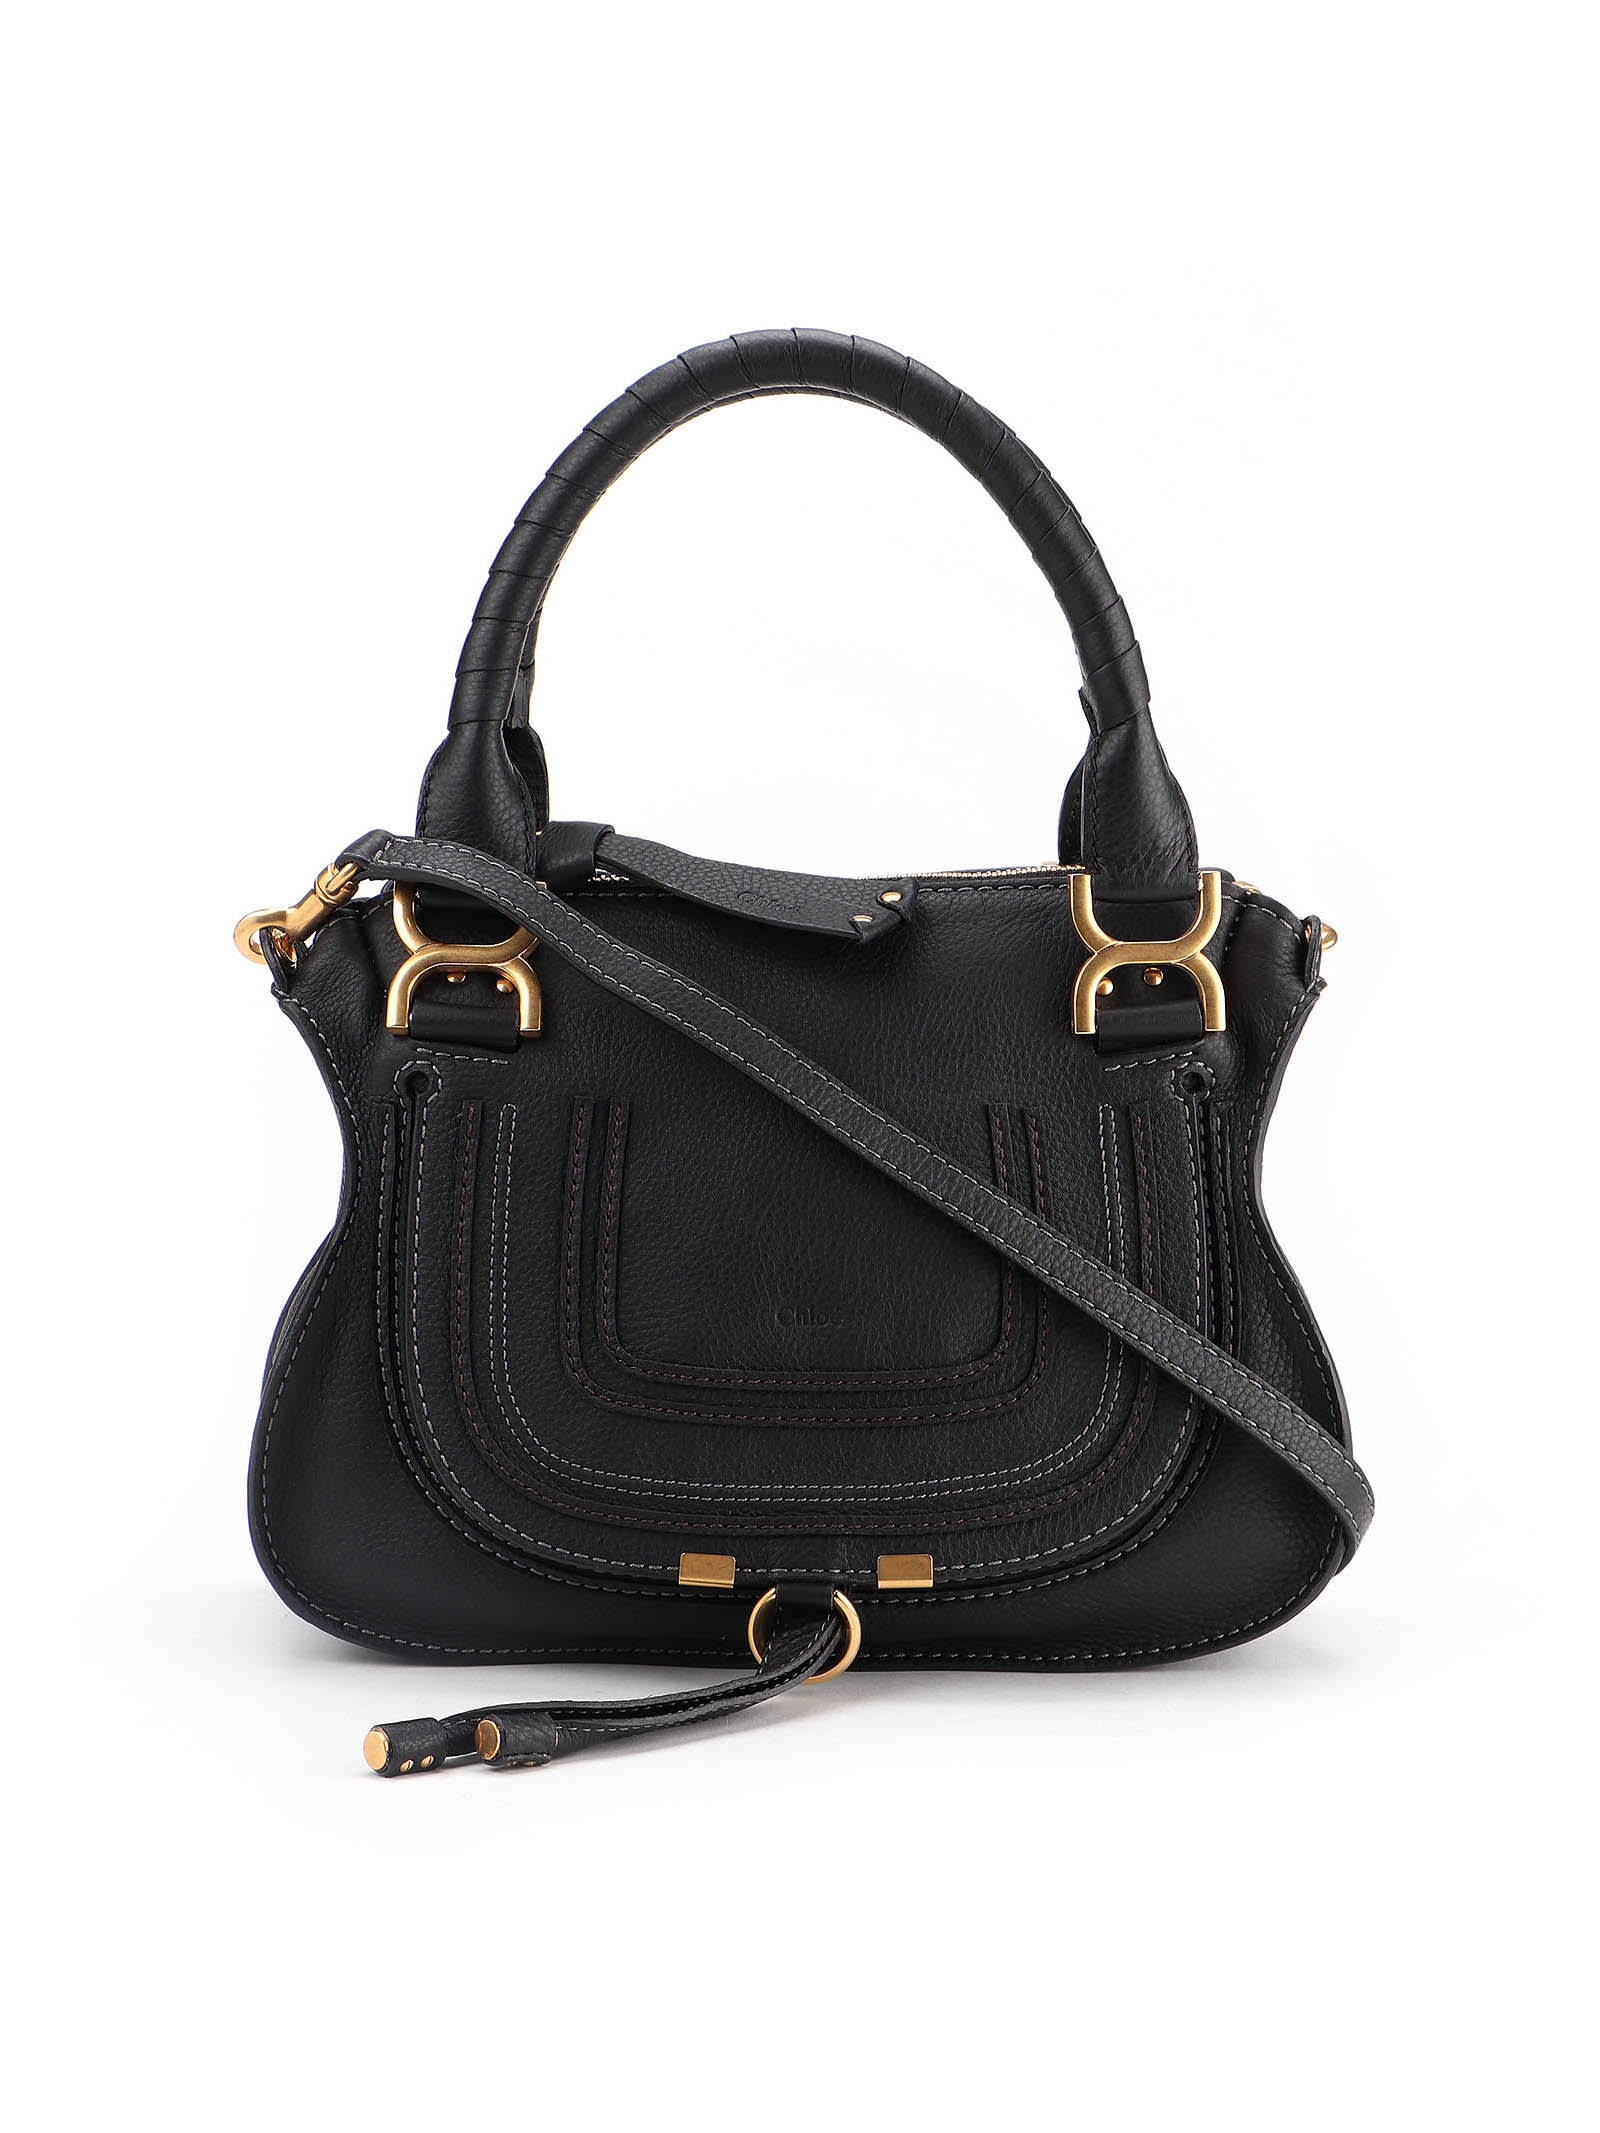 Chloé Marcie Tote Bag from ChloéComposition: Calf Leather Bos Taurus